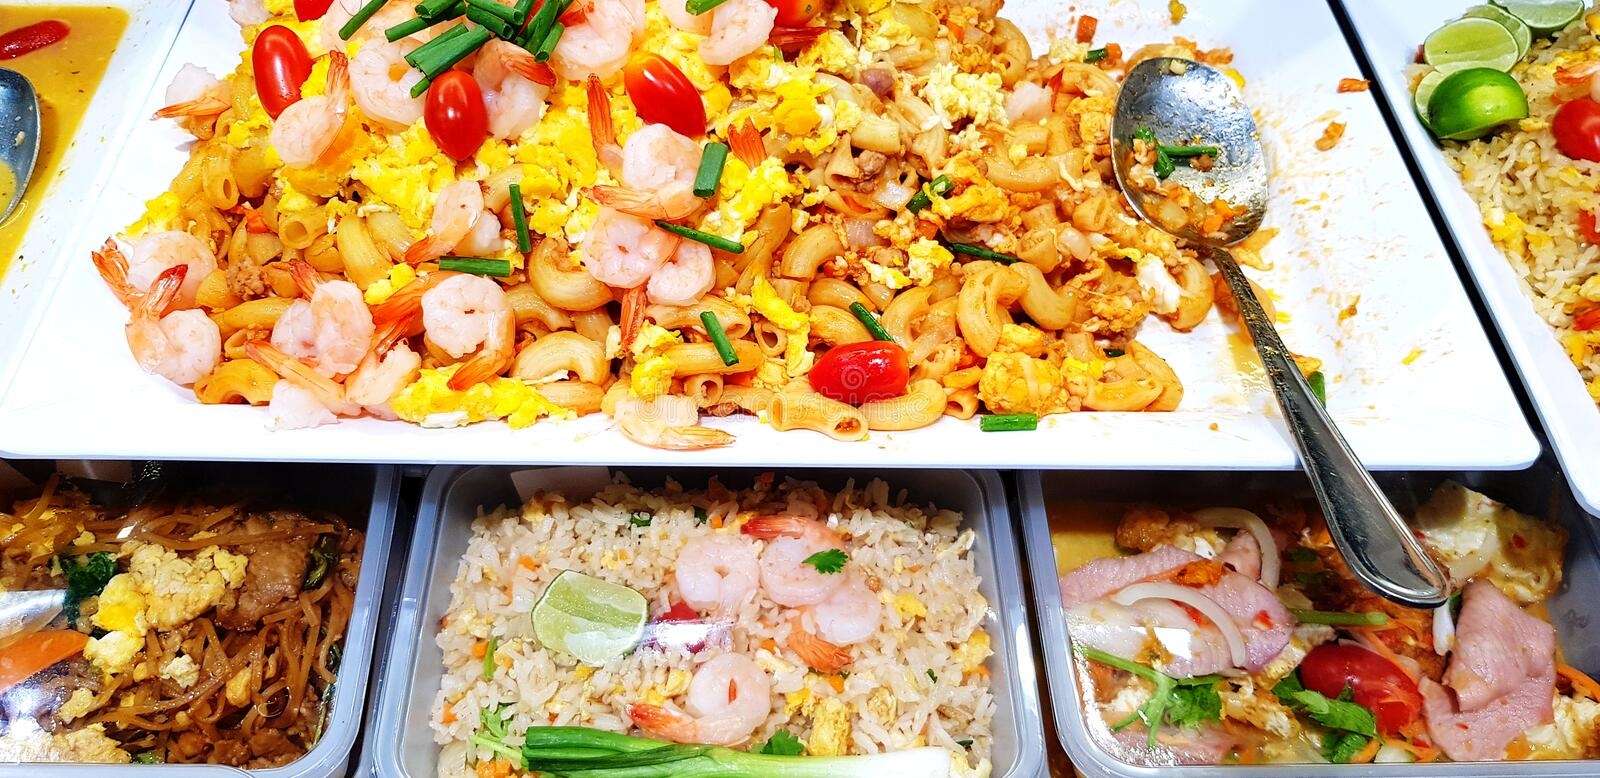 Stir fried macaroni with prawn and Fried rice with shrimp on white tray with spoon for sale stock images